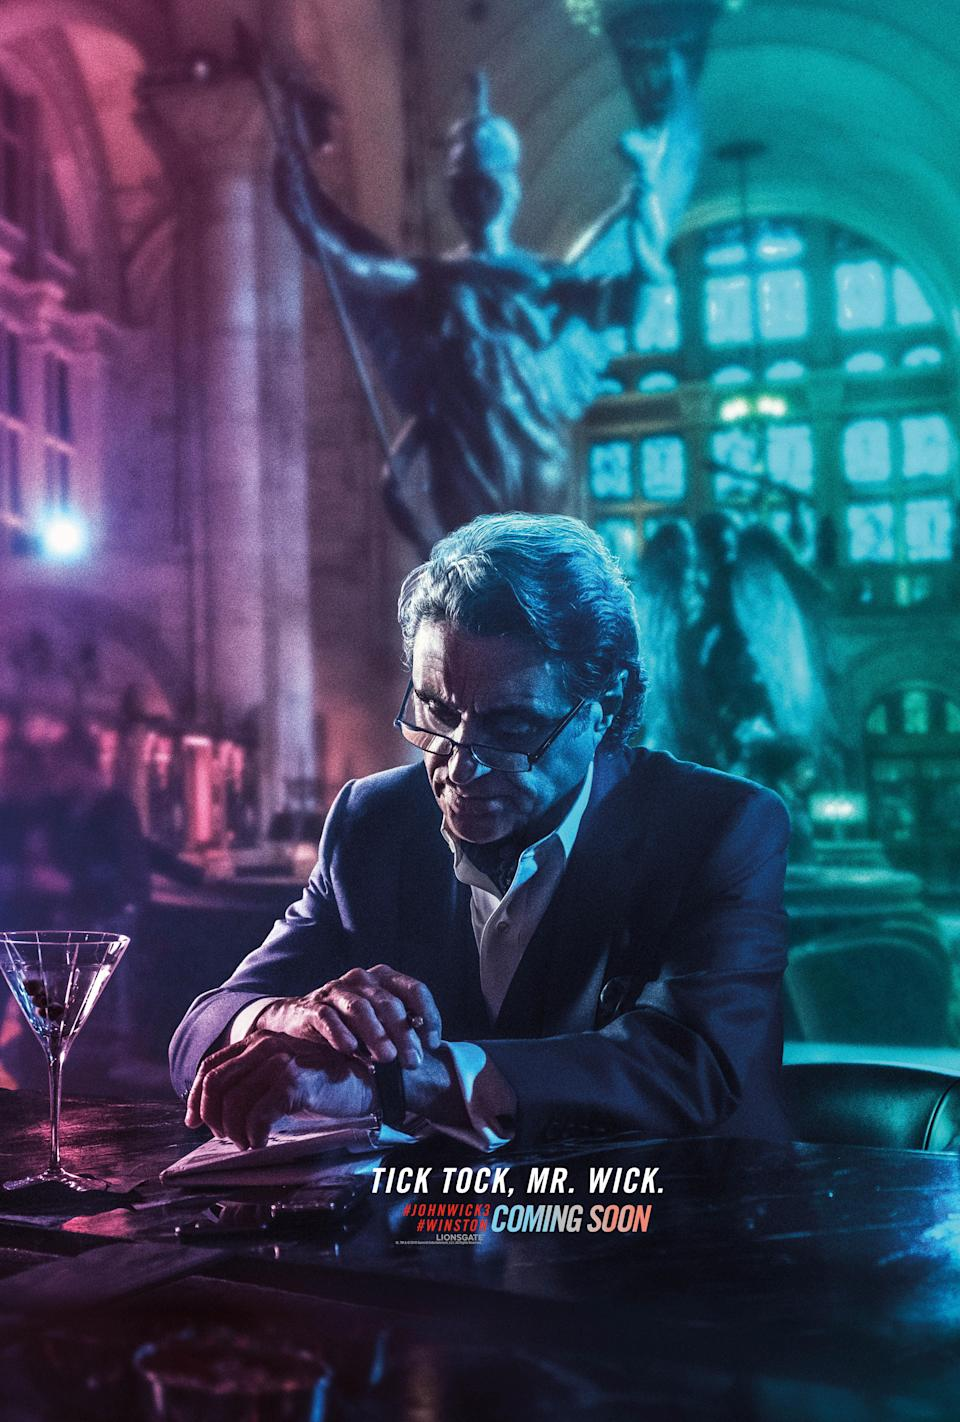 <p>One of John Wick's friends turned foes – the manager of the New York Continental gave John Wick a running start after he broke the rules in the last film, but he's now clearly impatiently waiting for his gang of assassins to catch up with him. </p>